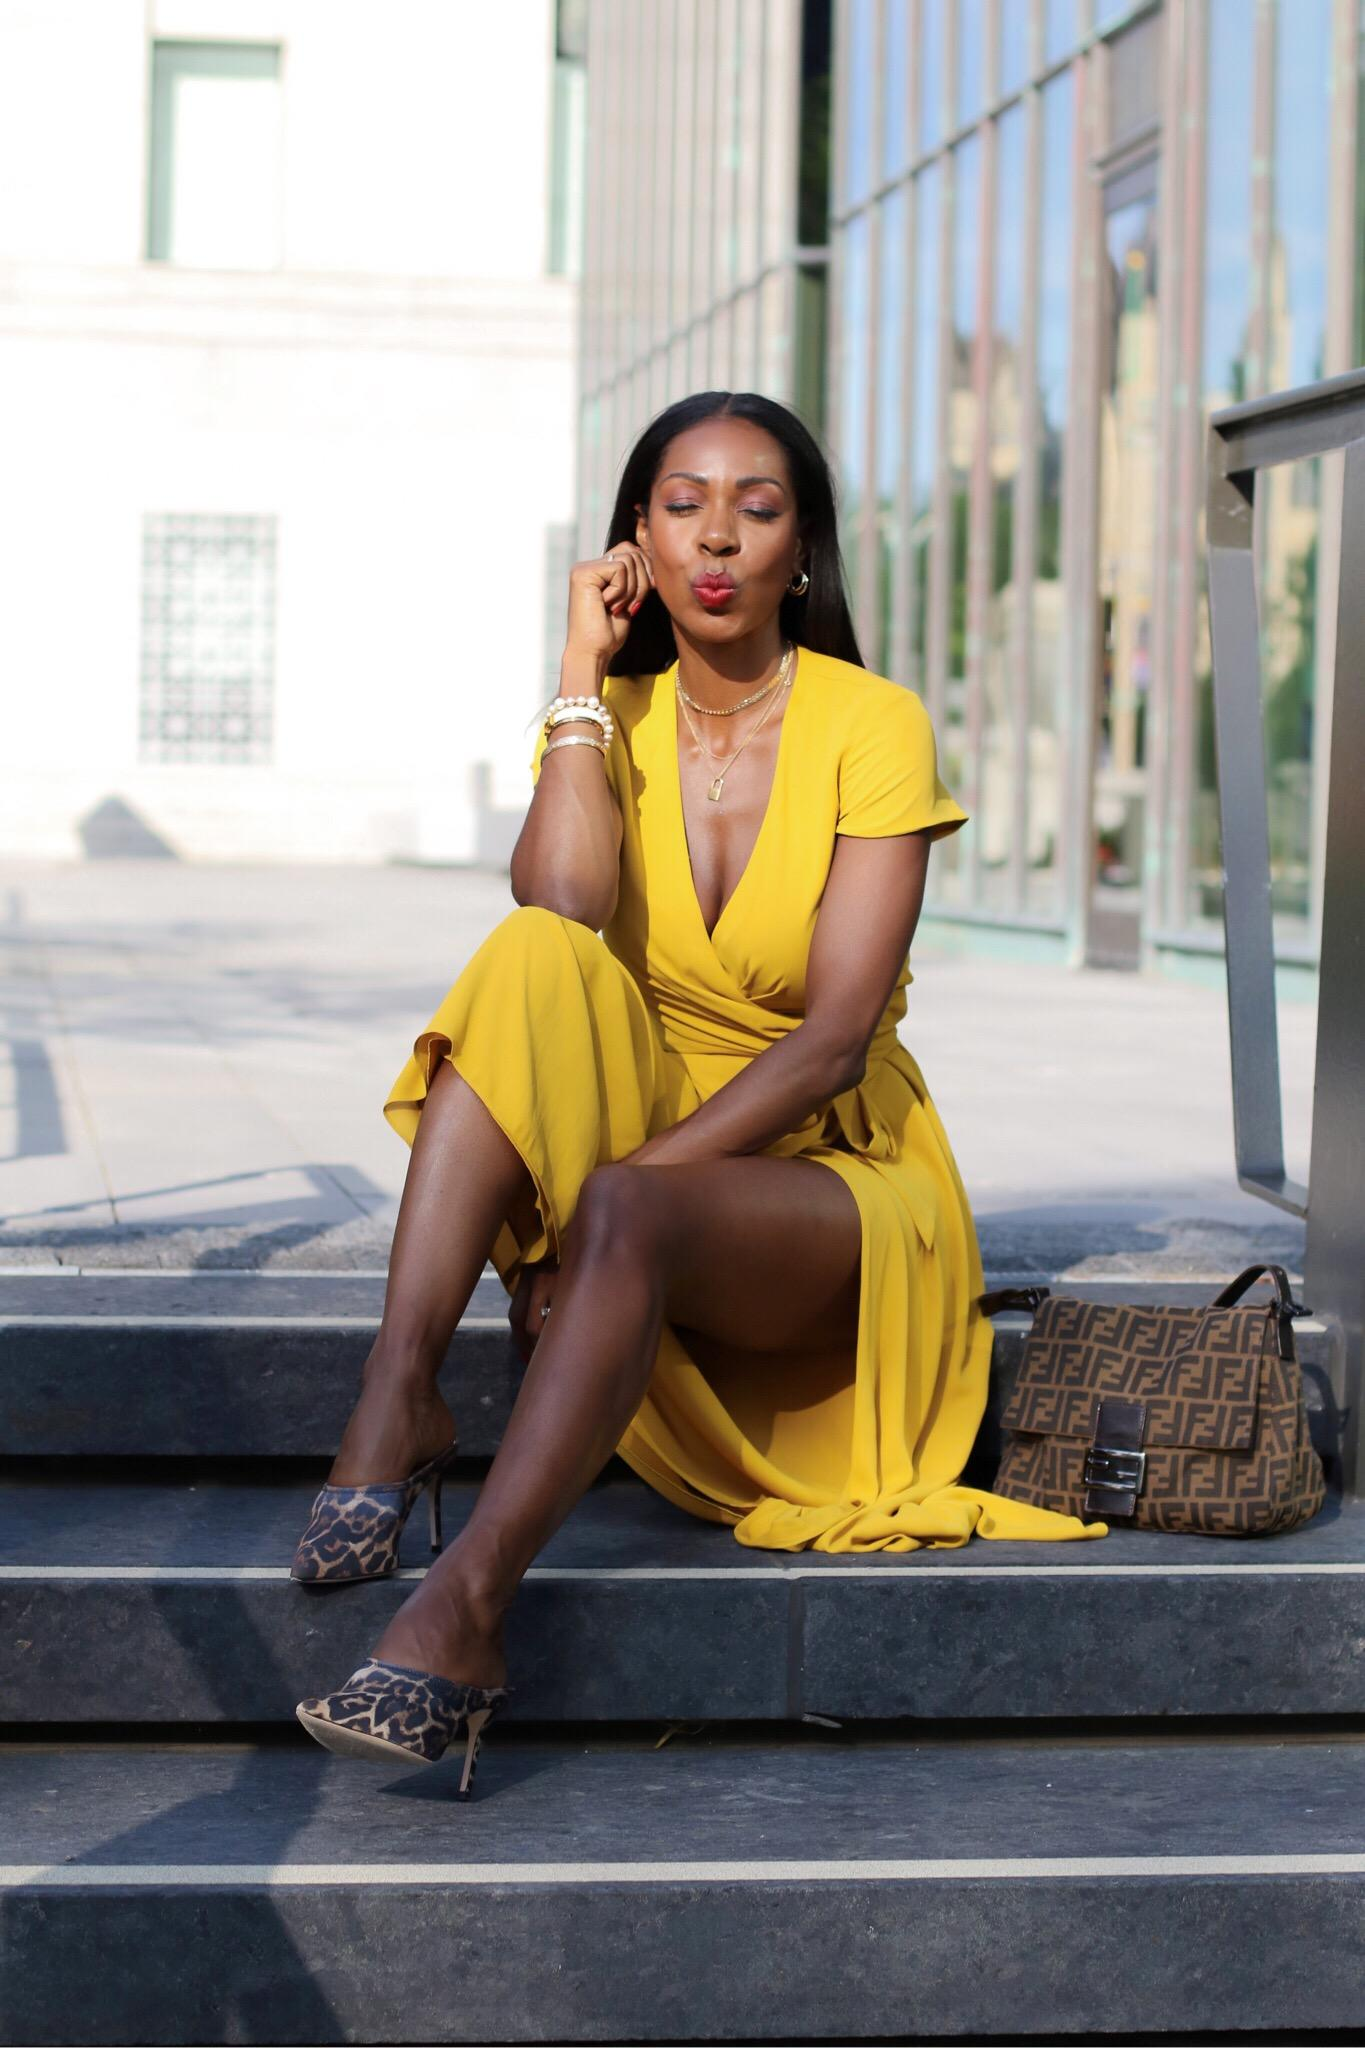 Dominique Baker Wearing a Yellow Dress walking through Ottawa